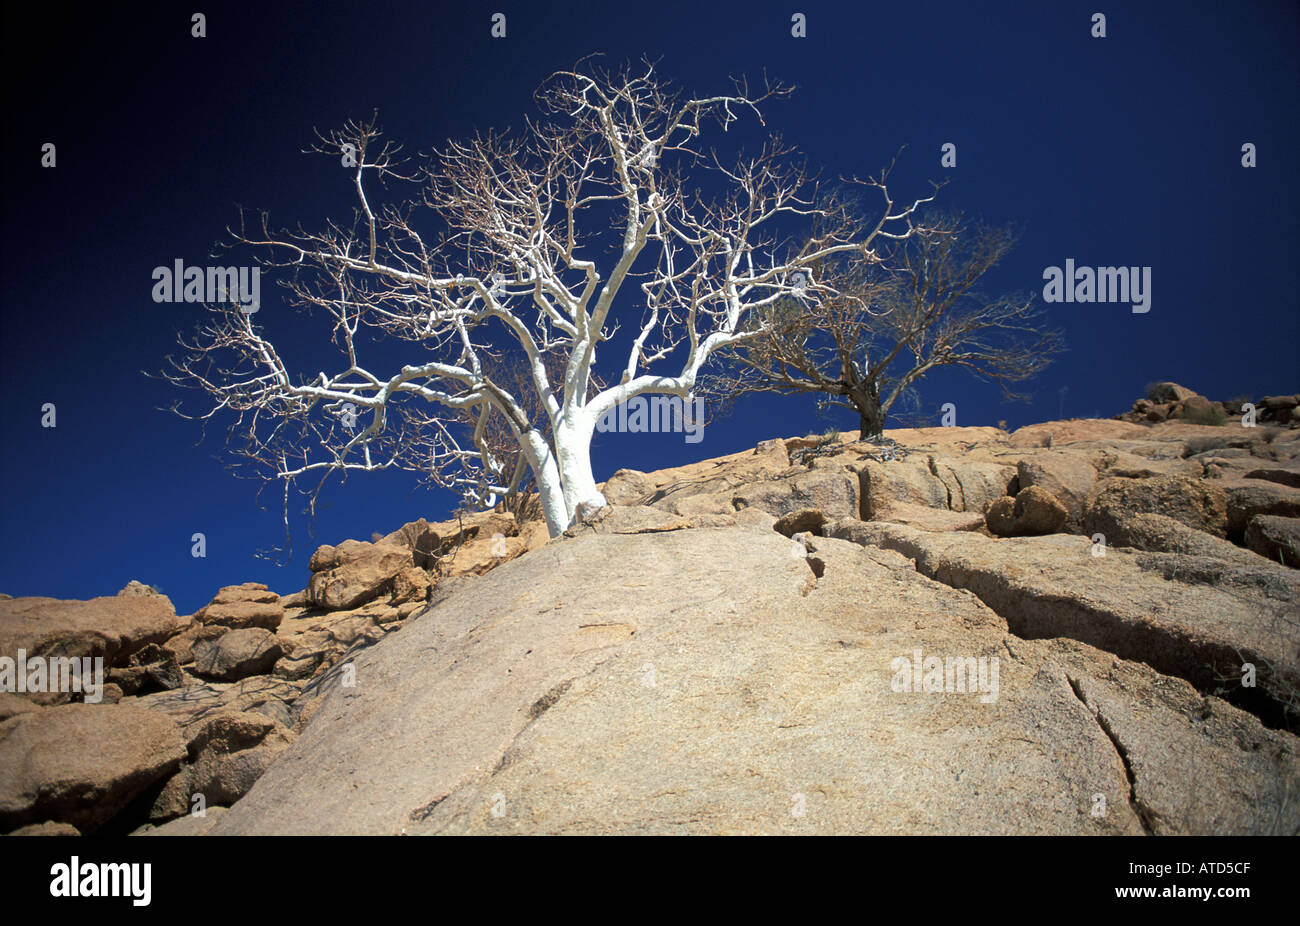 Petrified tree stands in stark contrast to its environment Namibia en route to Opuwo via Palmwag - Stock Image